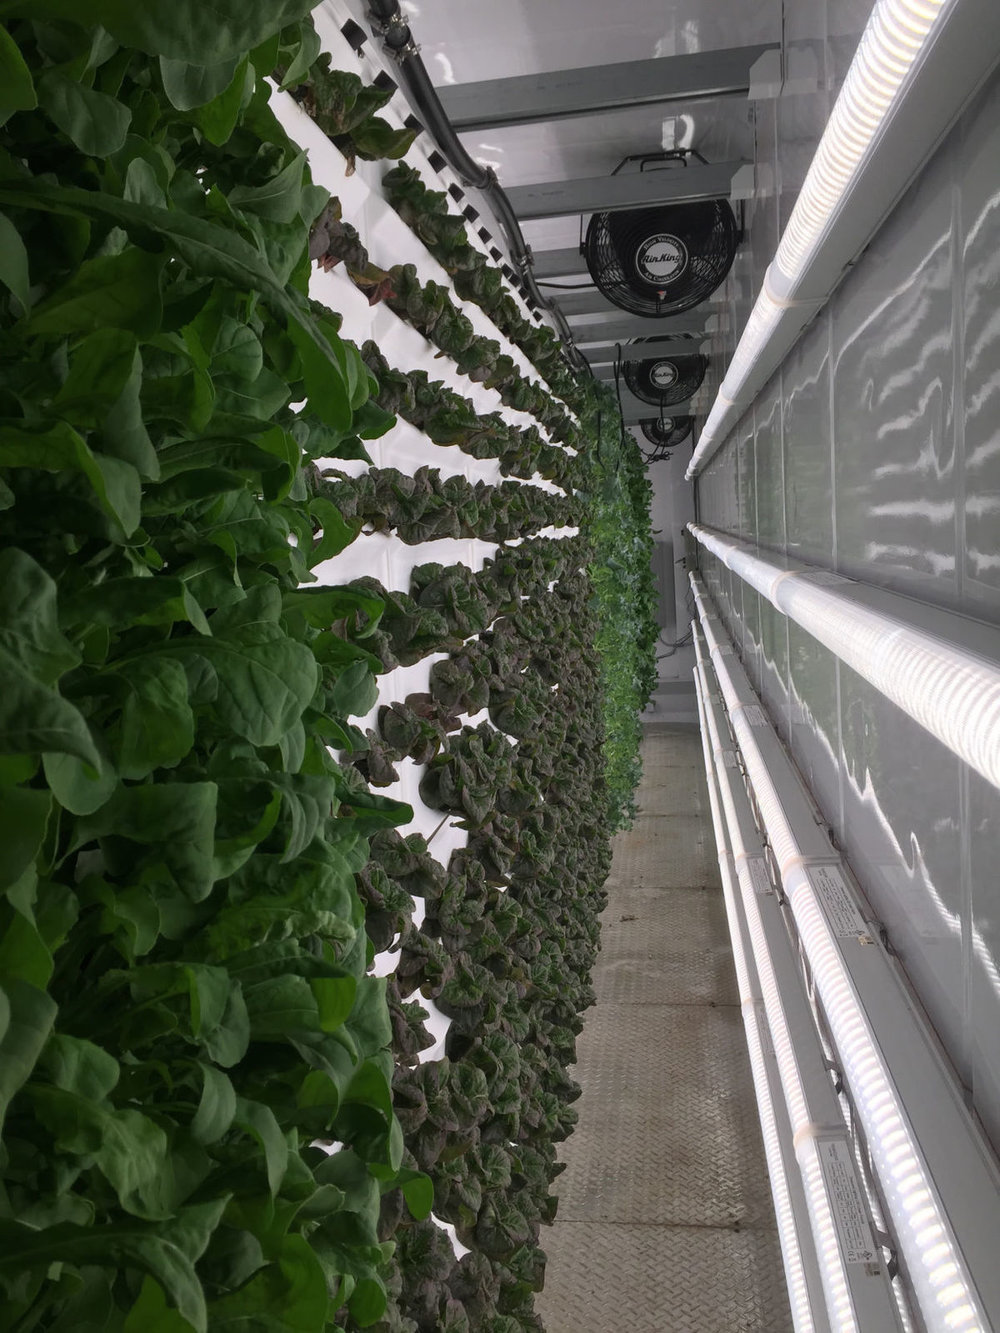 Tiger Corner Farms grows more than 40,000 heads of lettuce a year inside shipping containers in Summerville. Tony Bertauski/Provided  |  Tony Bertauski